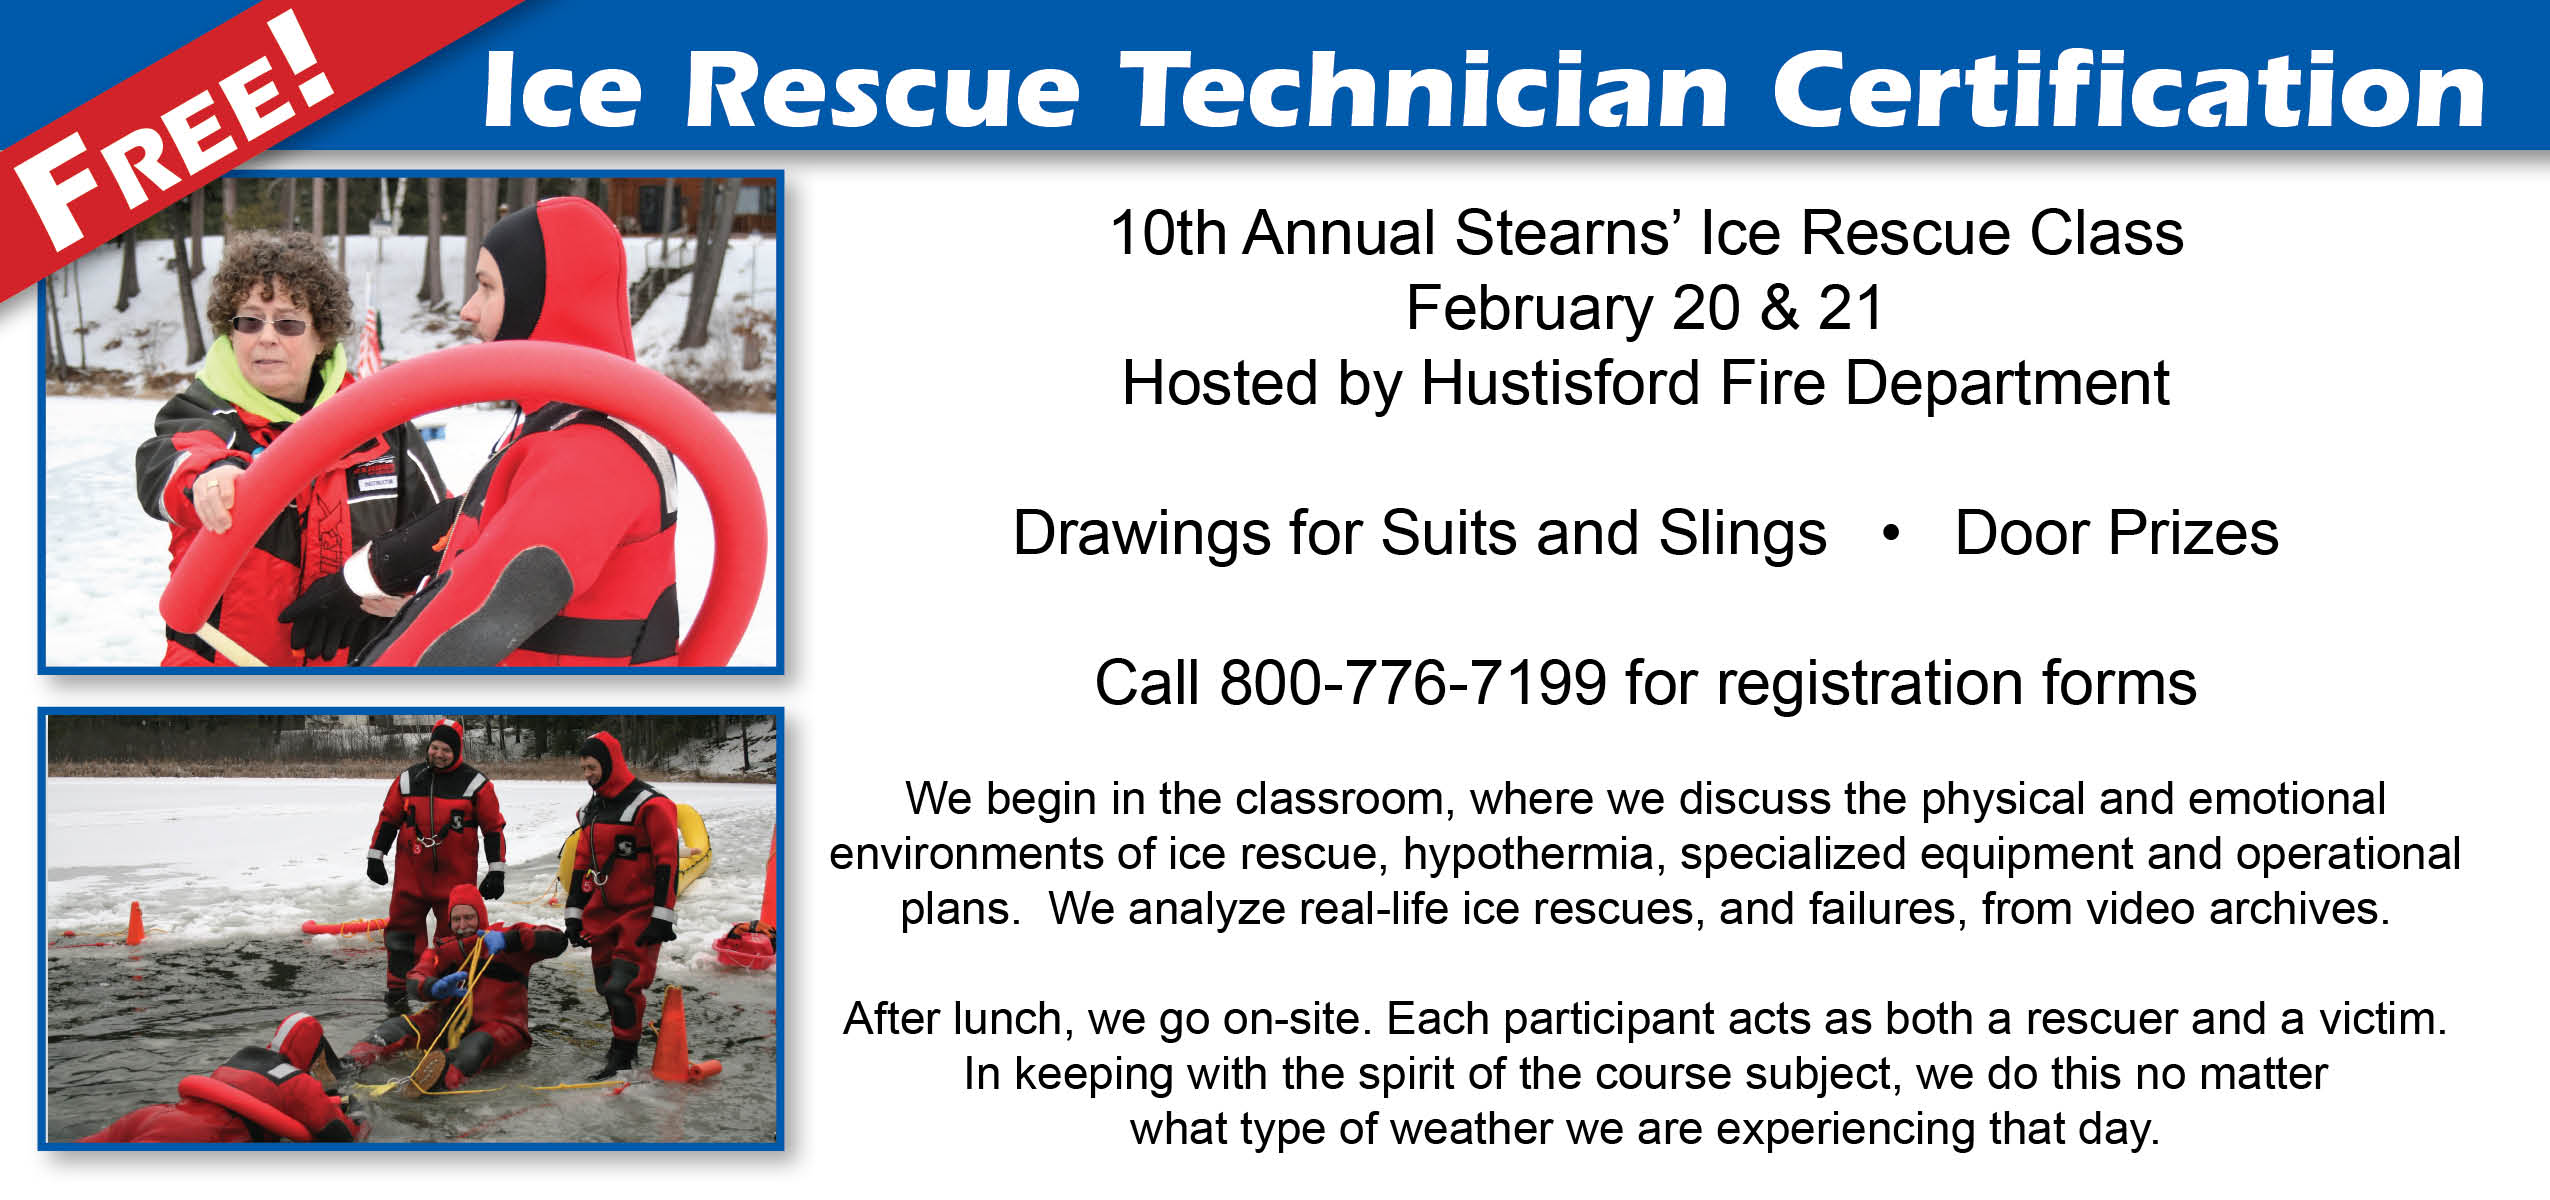 Free Stearns' Ice Rescue Class